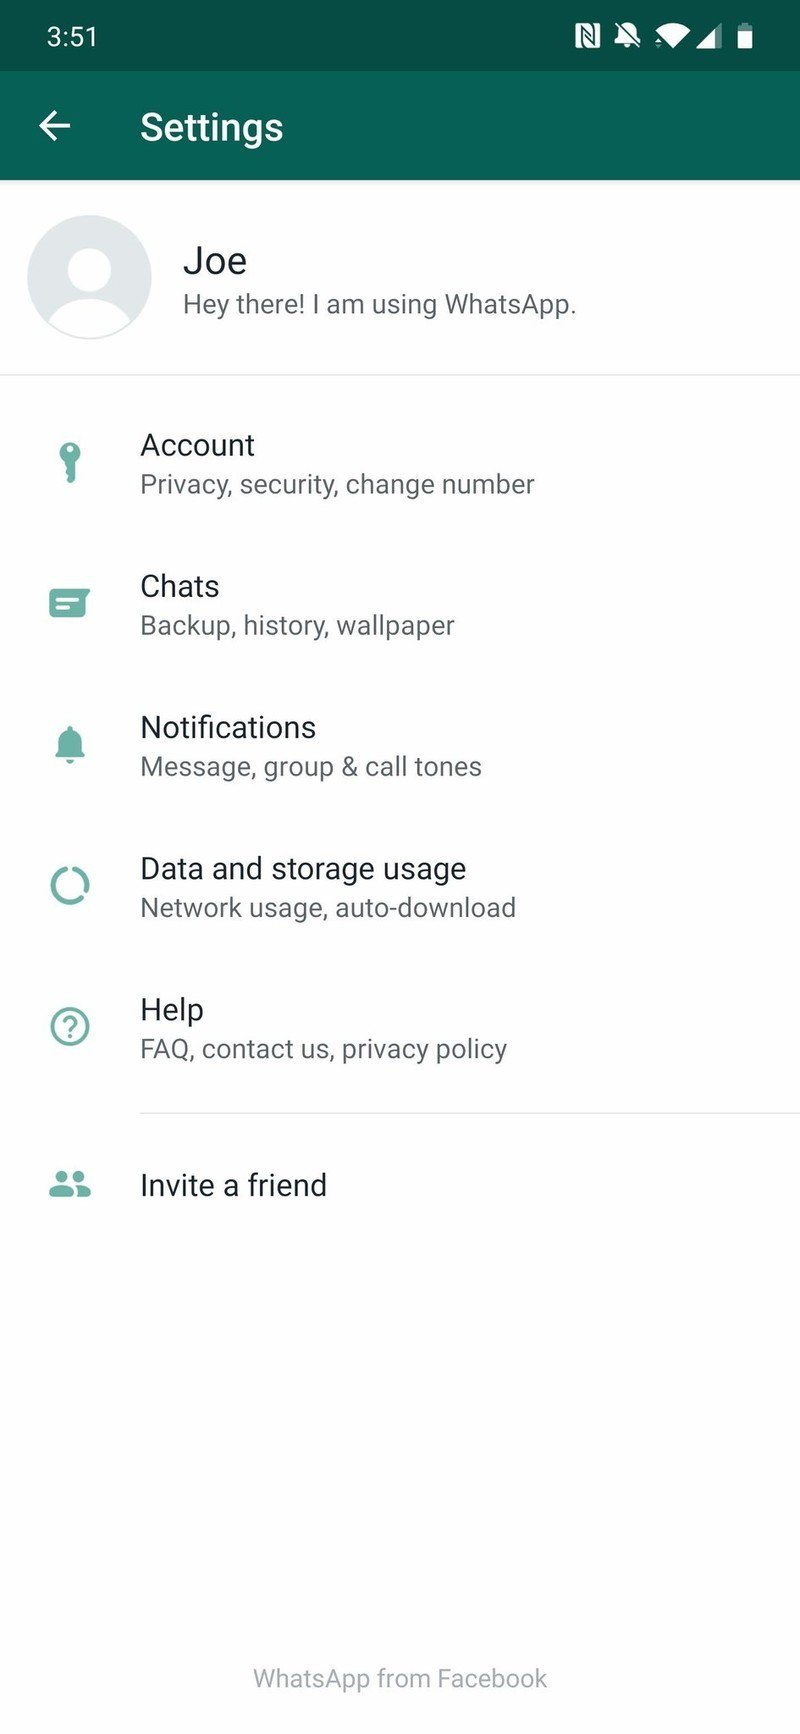 whatsapp-backup-messages-8.jpg?itok=SuLa